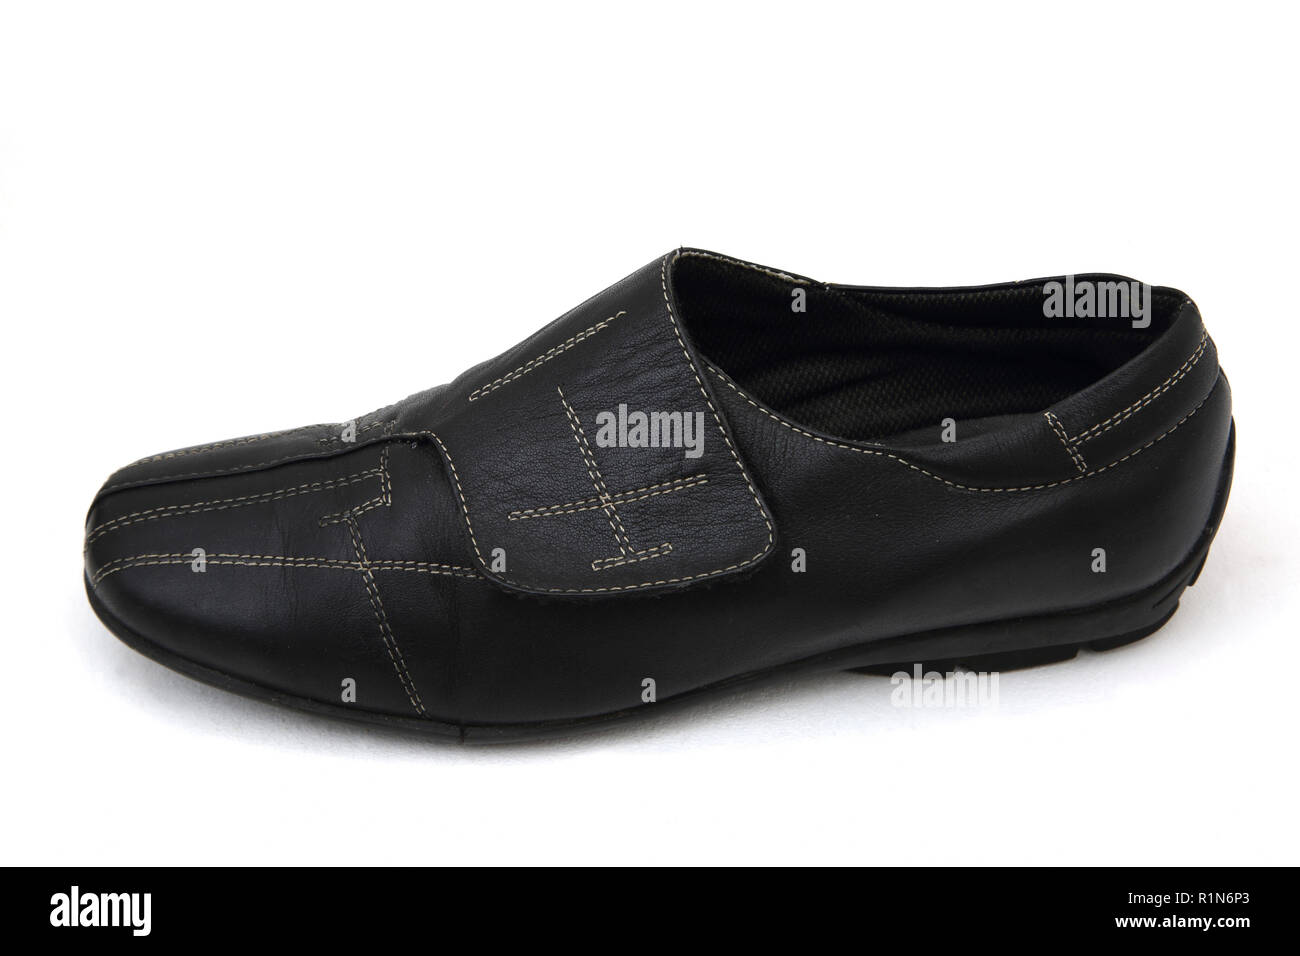 Flat Leather Shoe with Velcro Fastener - Stock Image